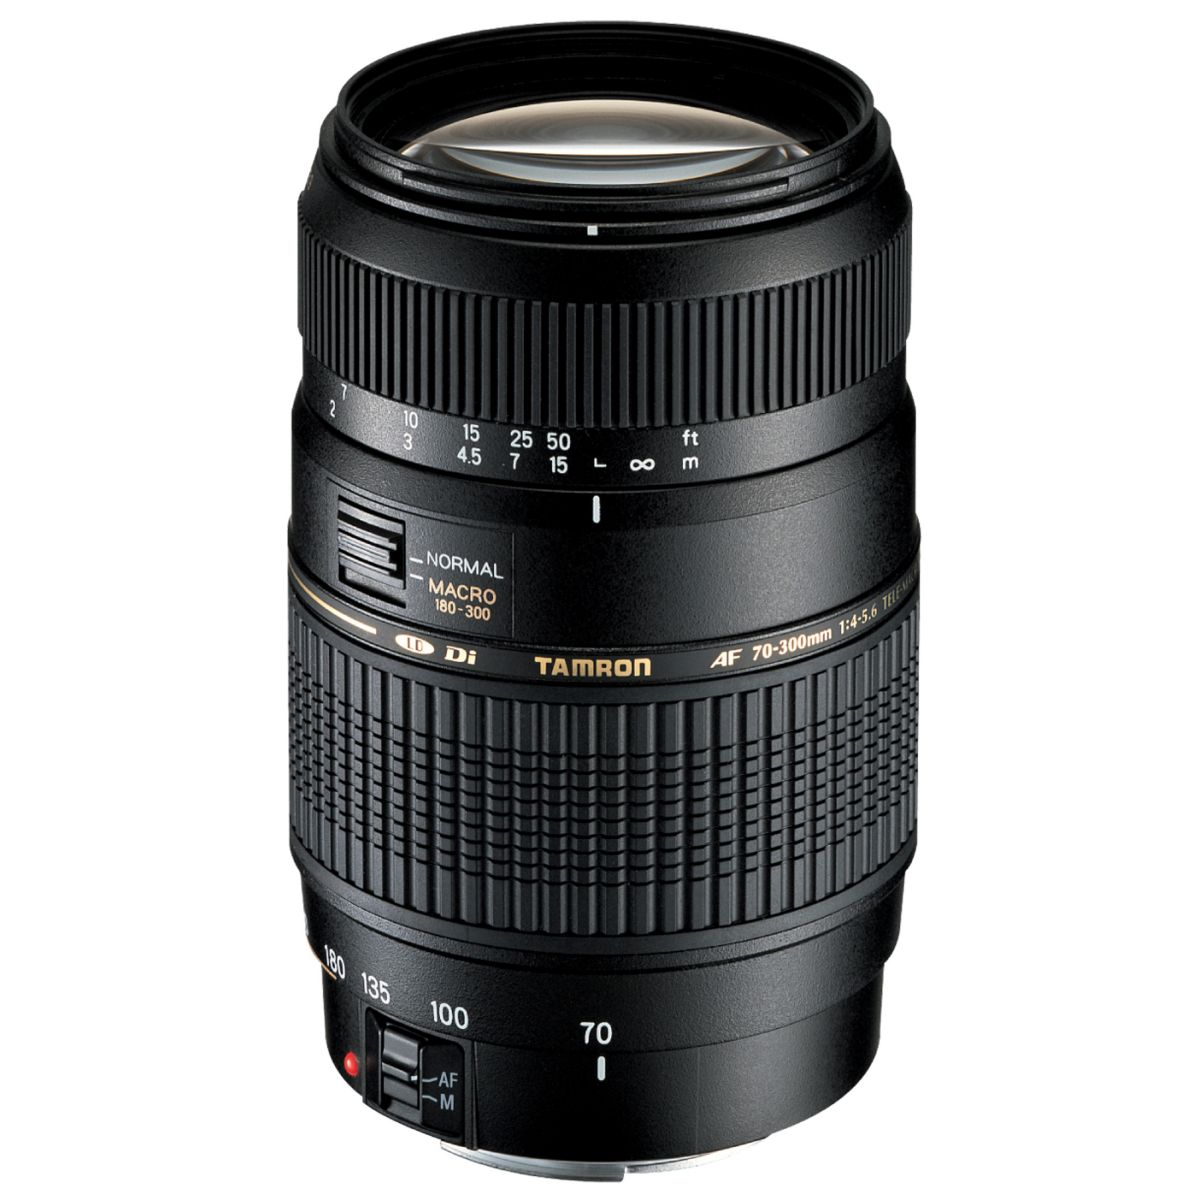 Objectif pour Reflex TAMRON AF 70-300mm f/4-5.6 Di LD IF 1:2 N...